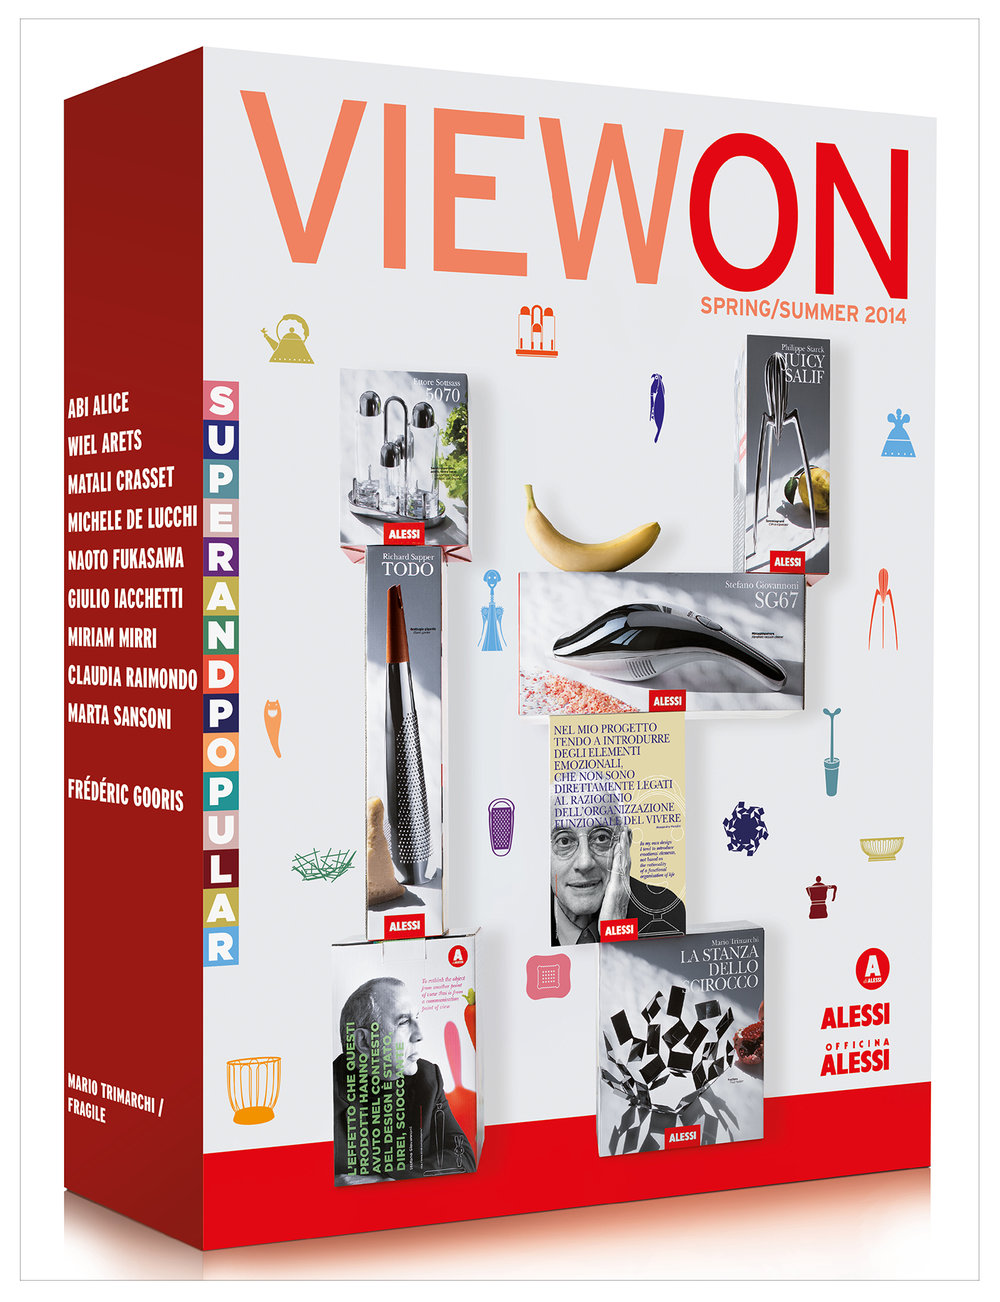 013-ViewOn_SS14 copia.jpg